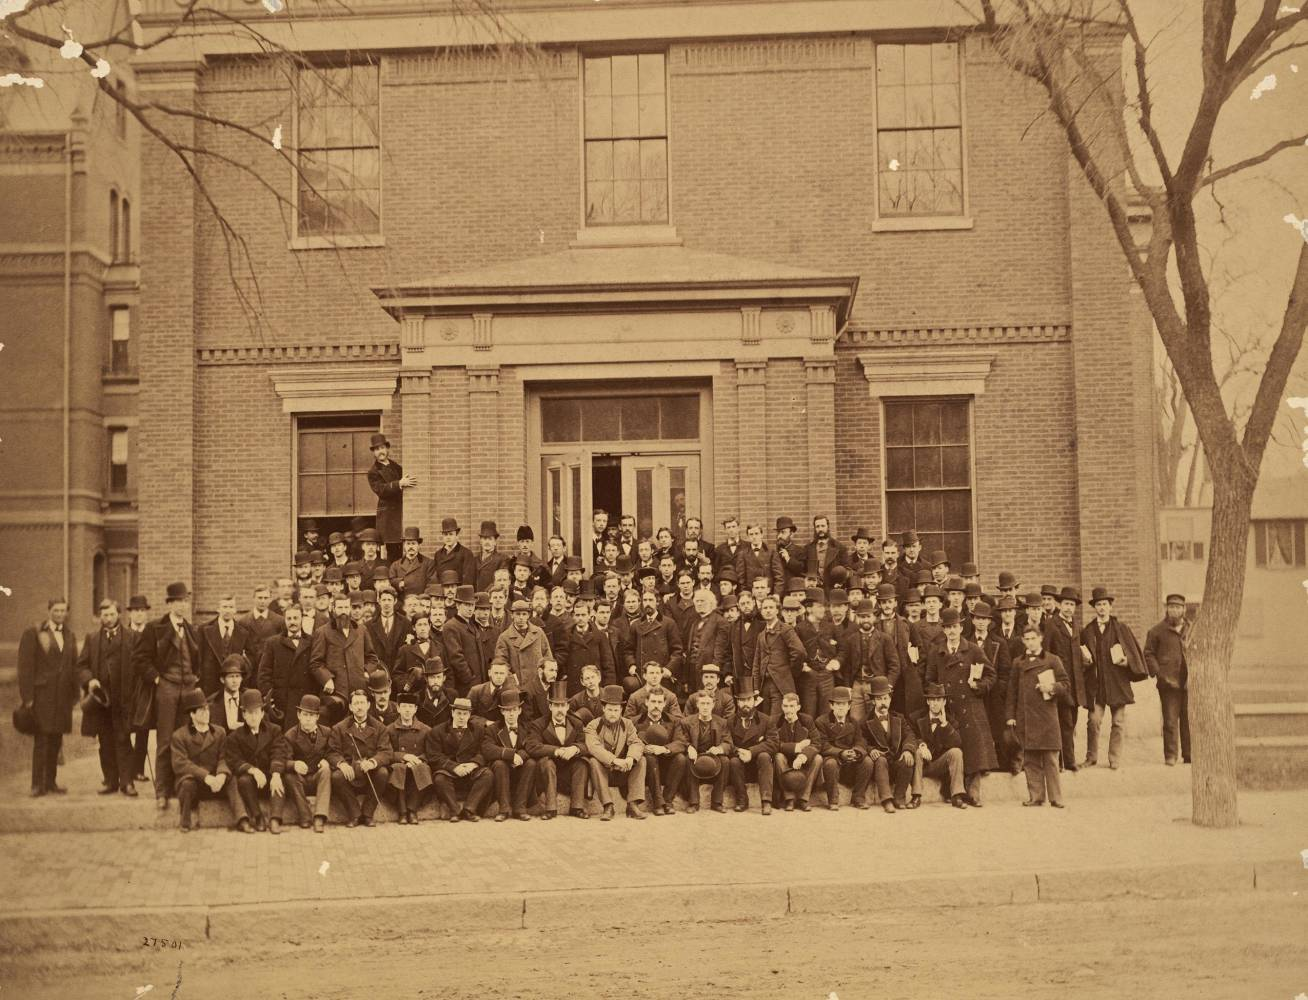 Historical photo of HLS Class of 1877. Students wearing black jackets and top hats posing for photo outside in front of a building